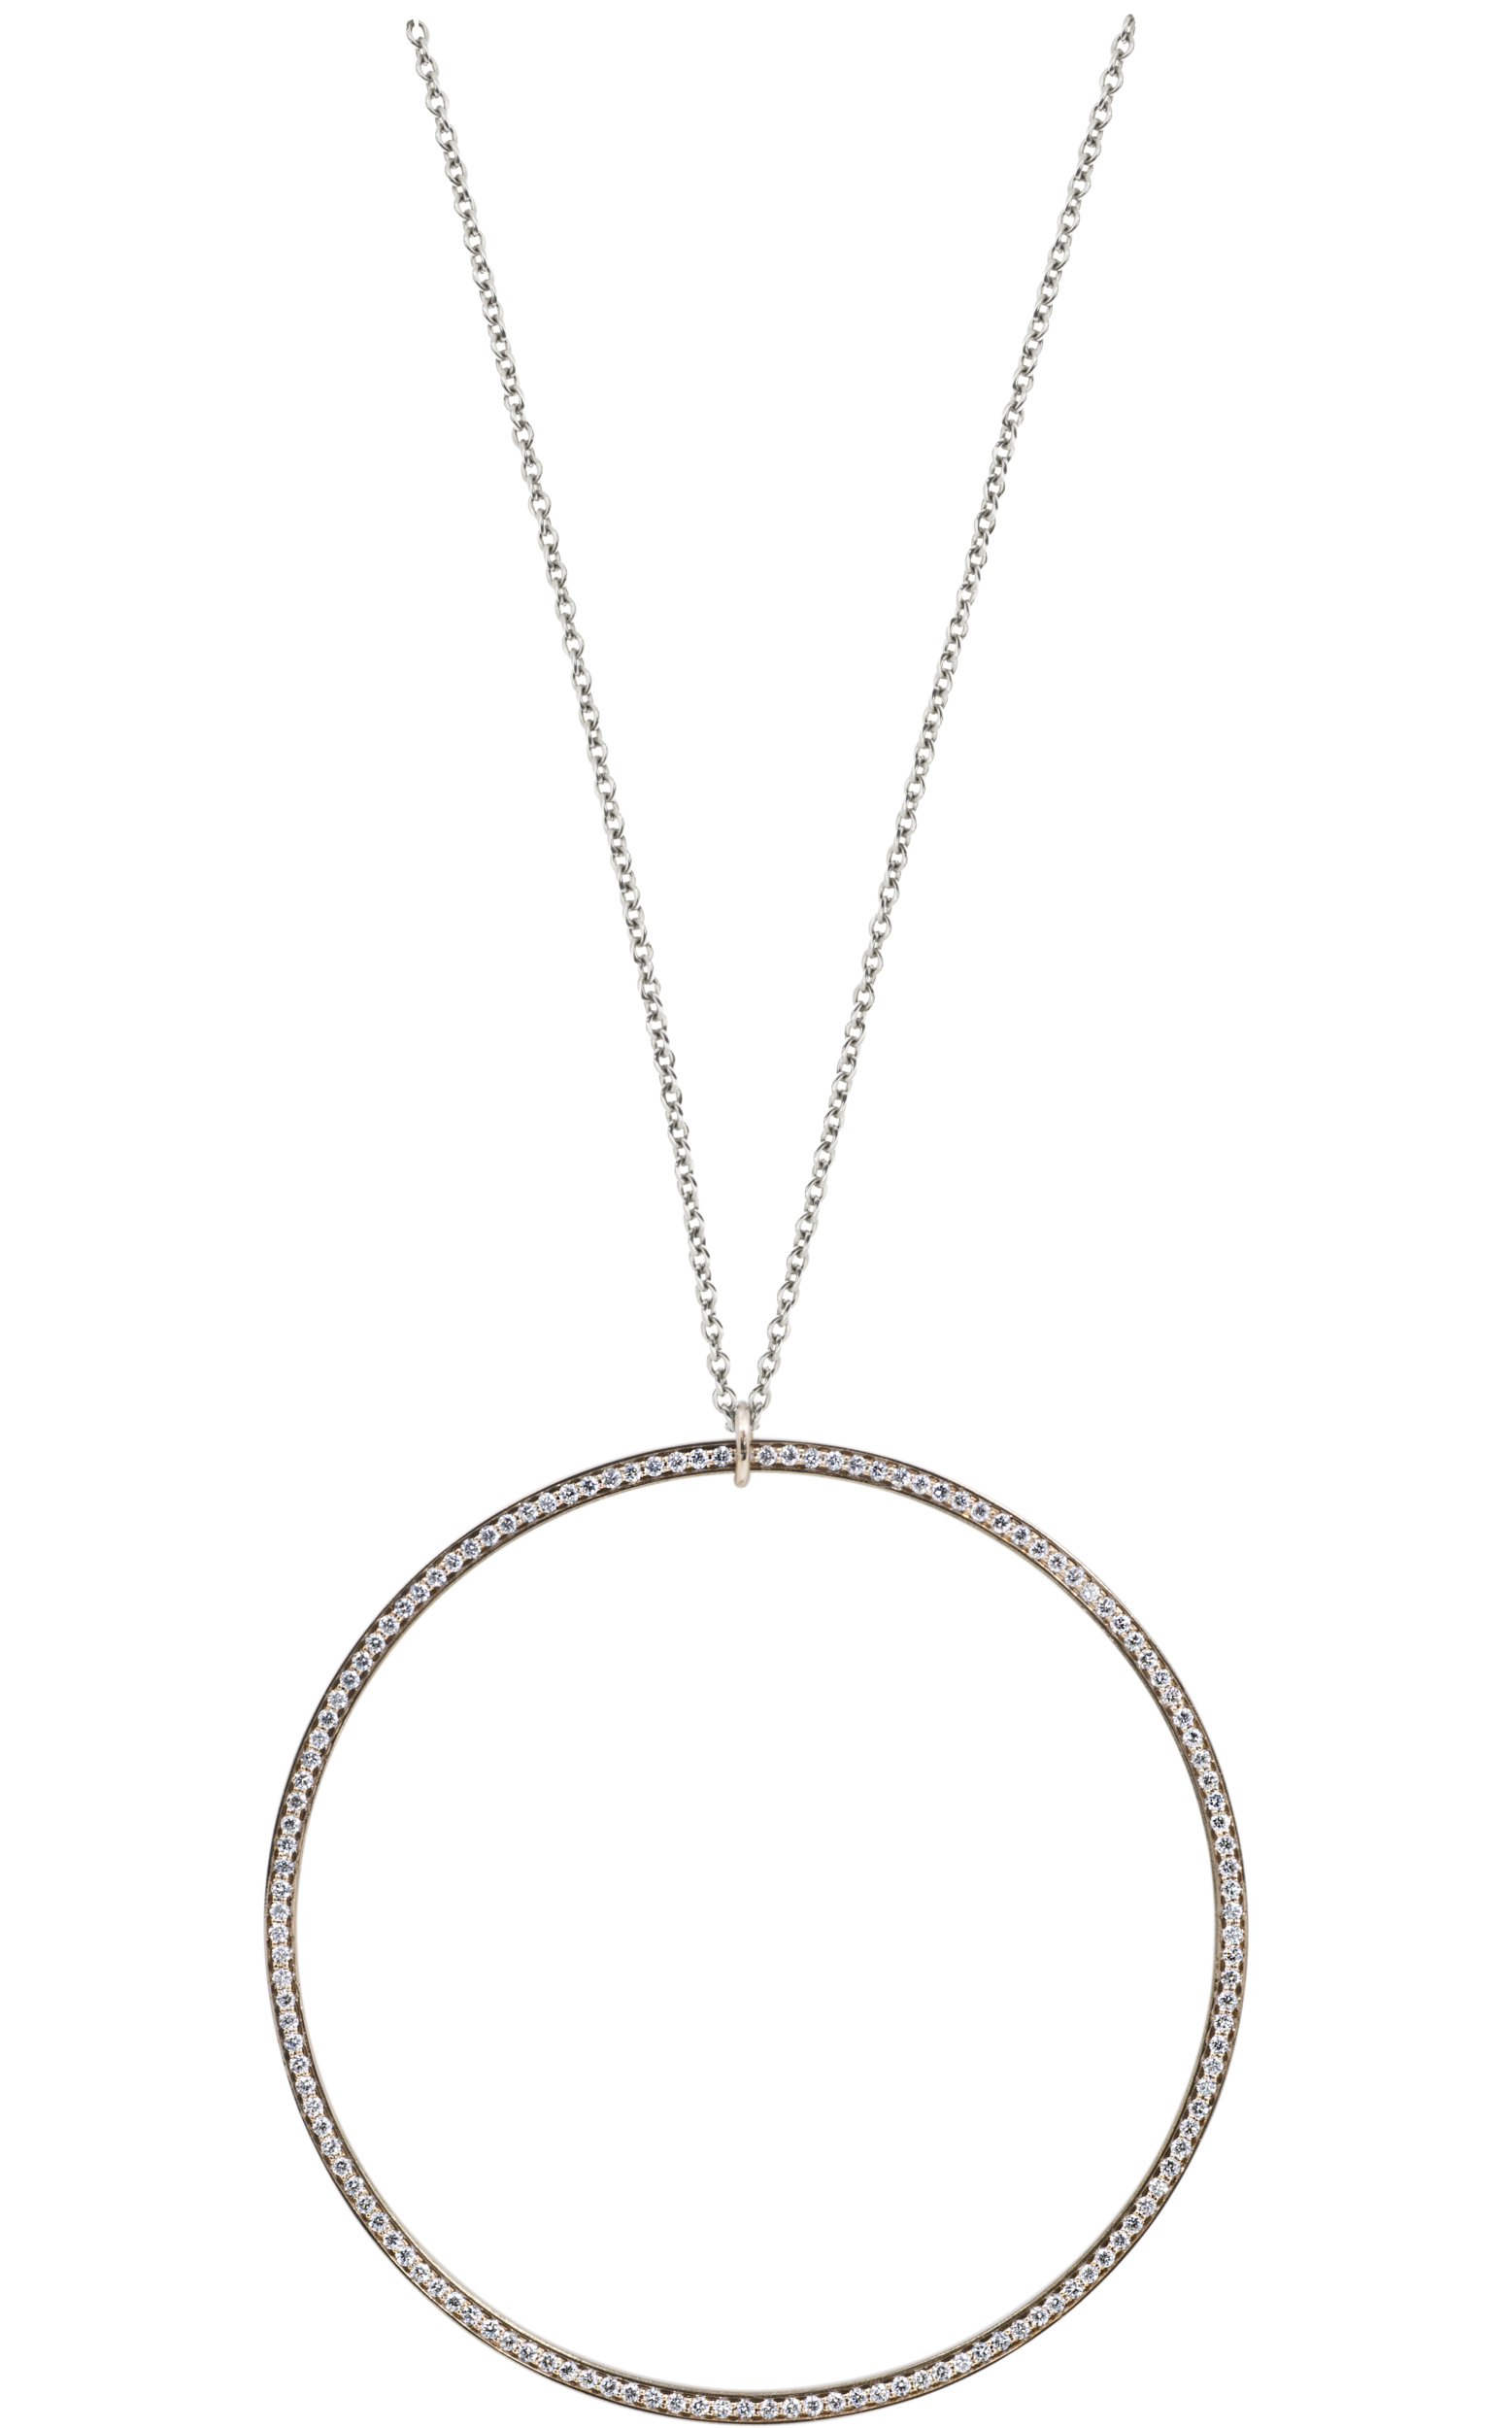 SATURN large ring pendant rose gold set with diamond and stainless steel chain